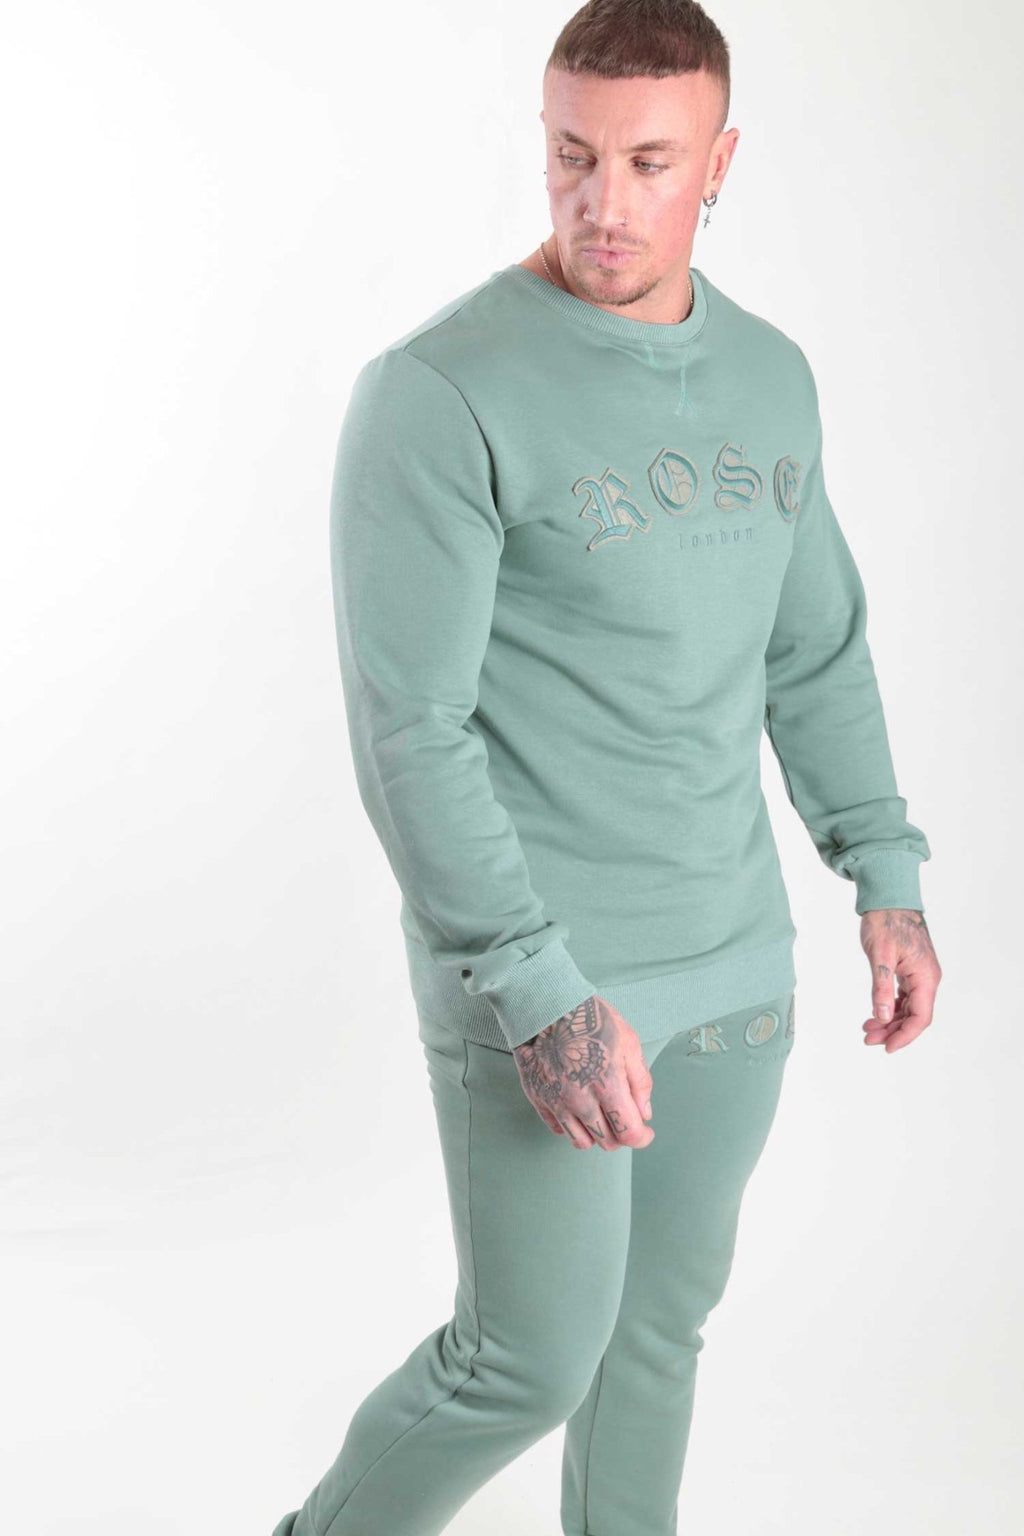 Sage Aplique Embroidery Sweatshirt - Rose London